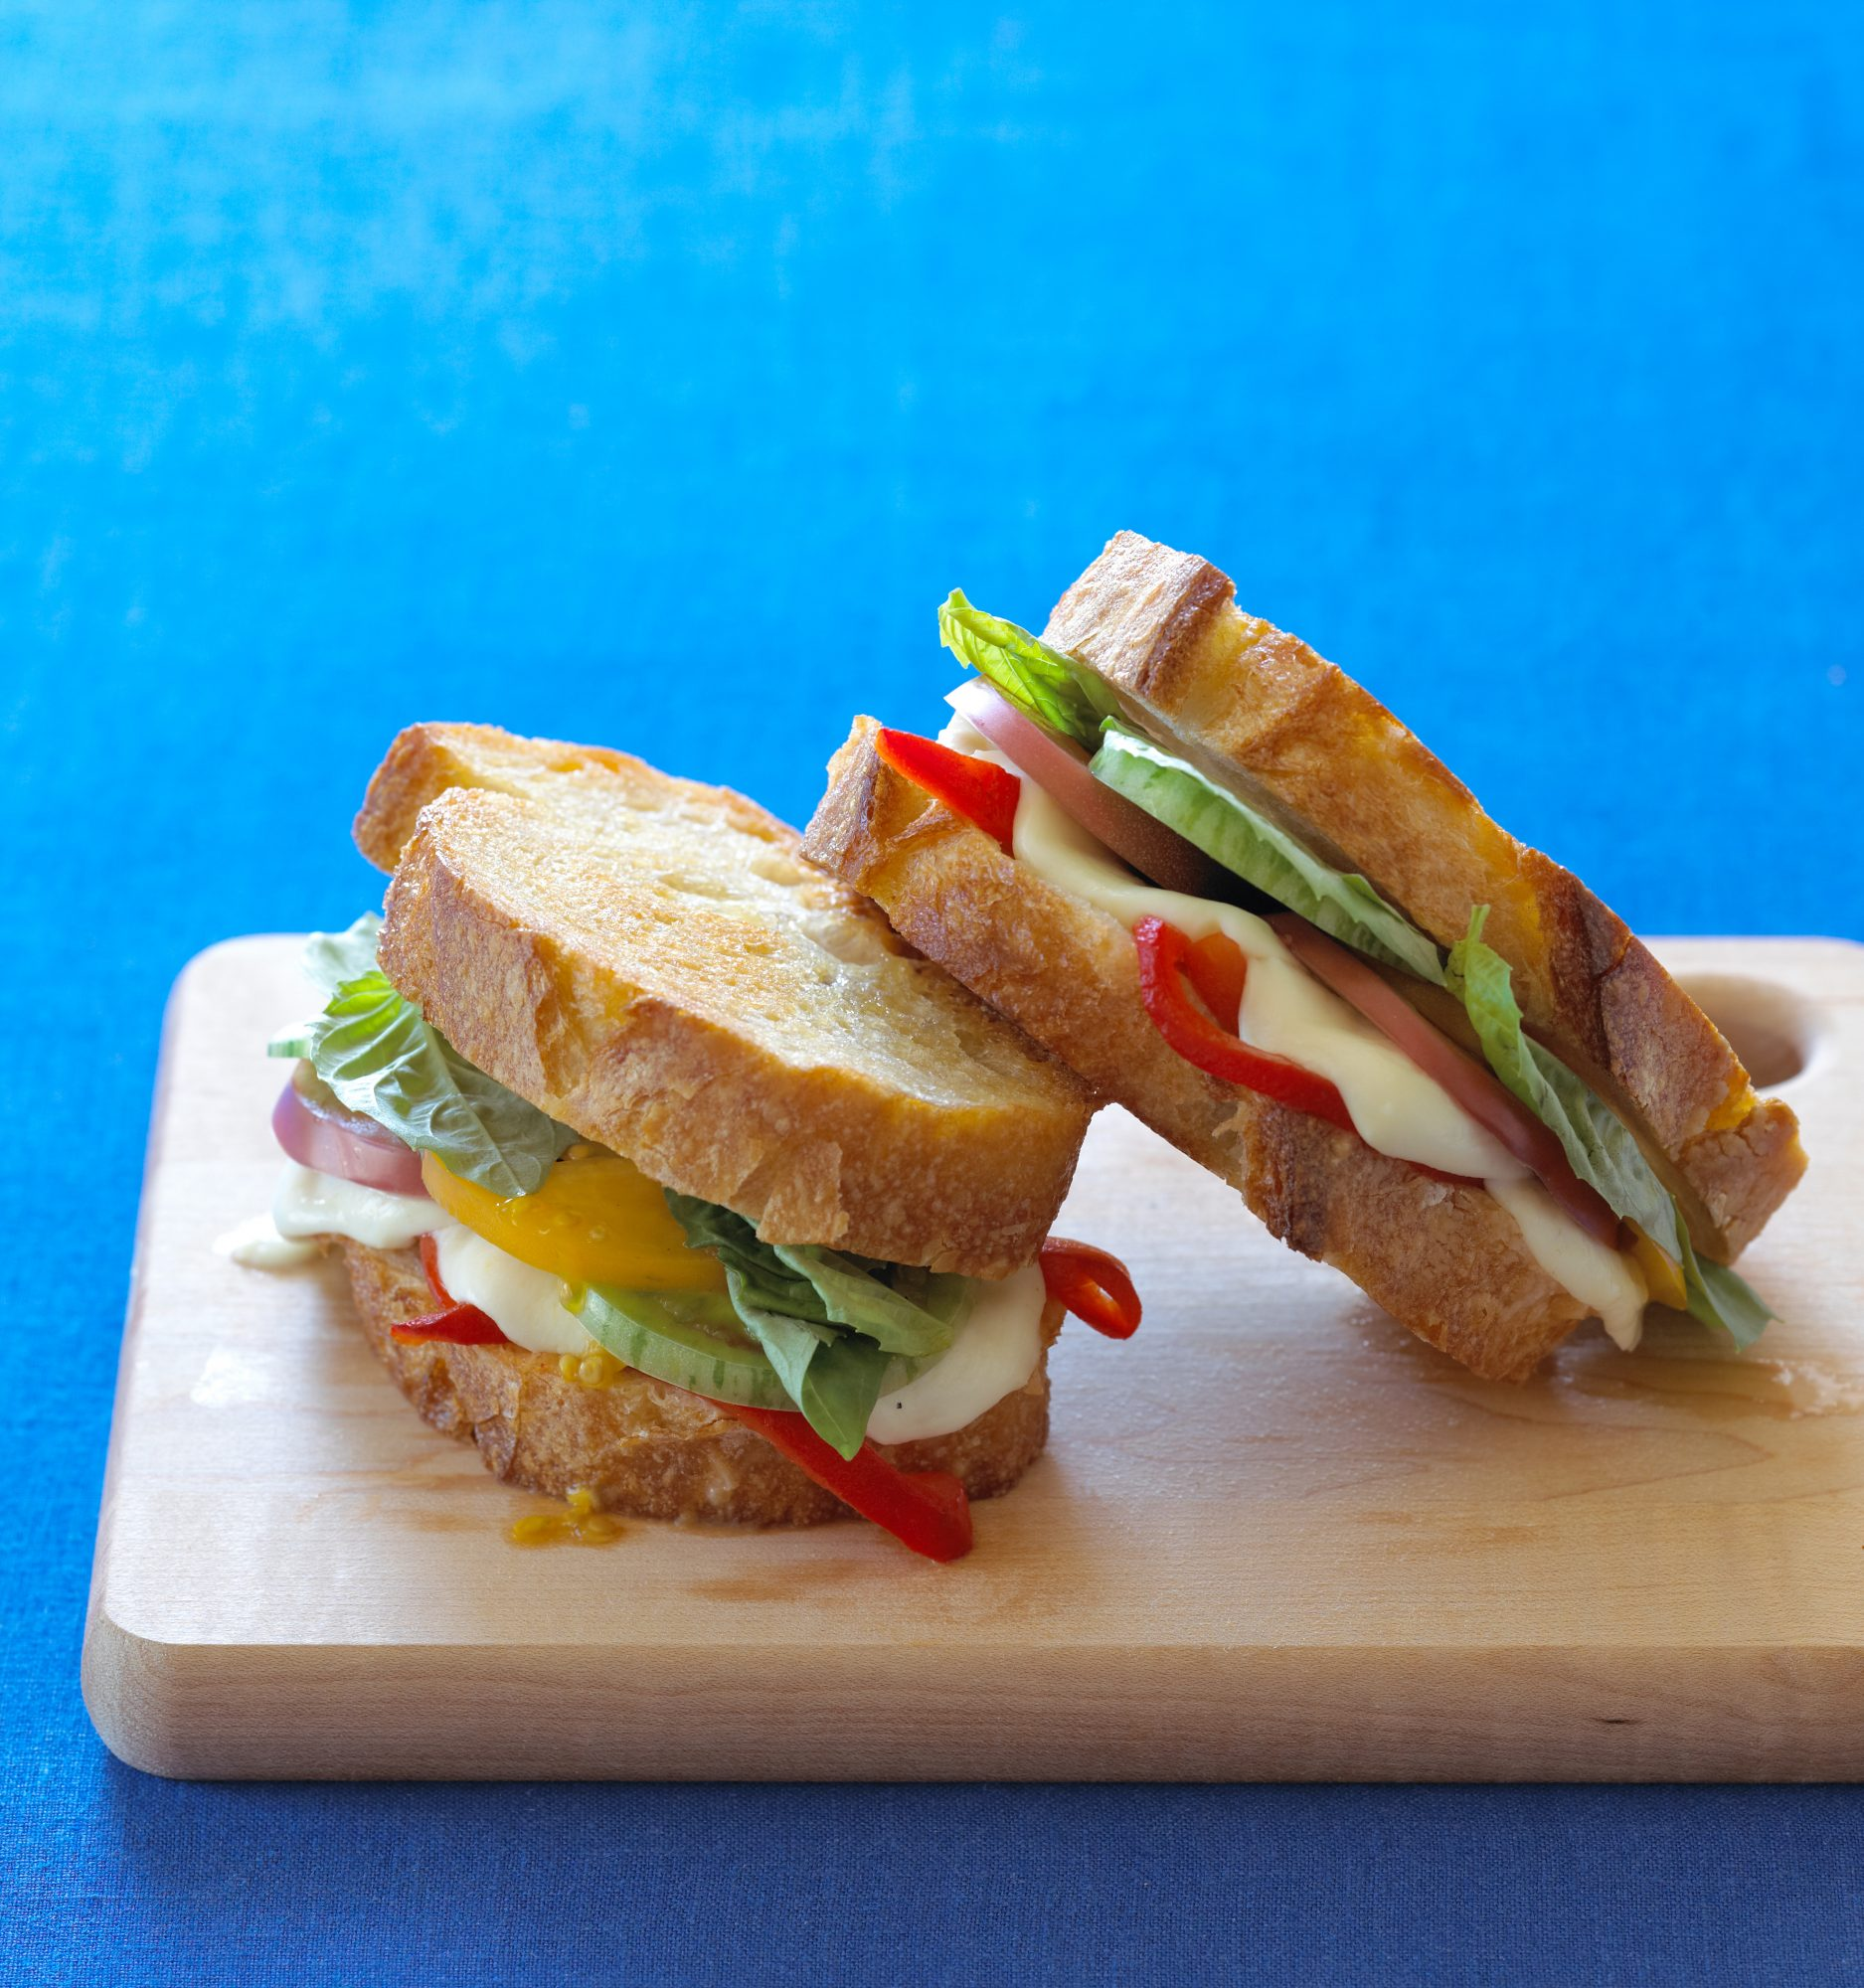 8 Vegetarian Sandwiches You'll Love